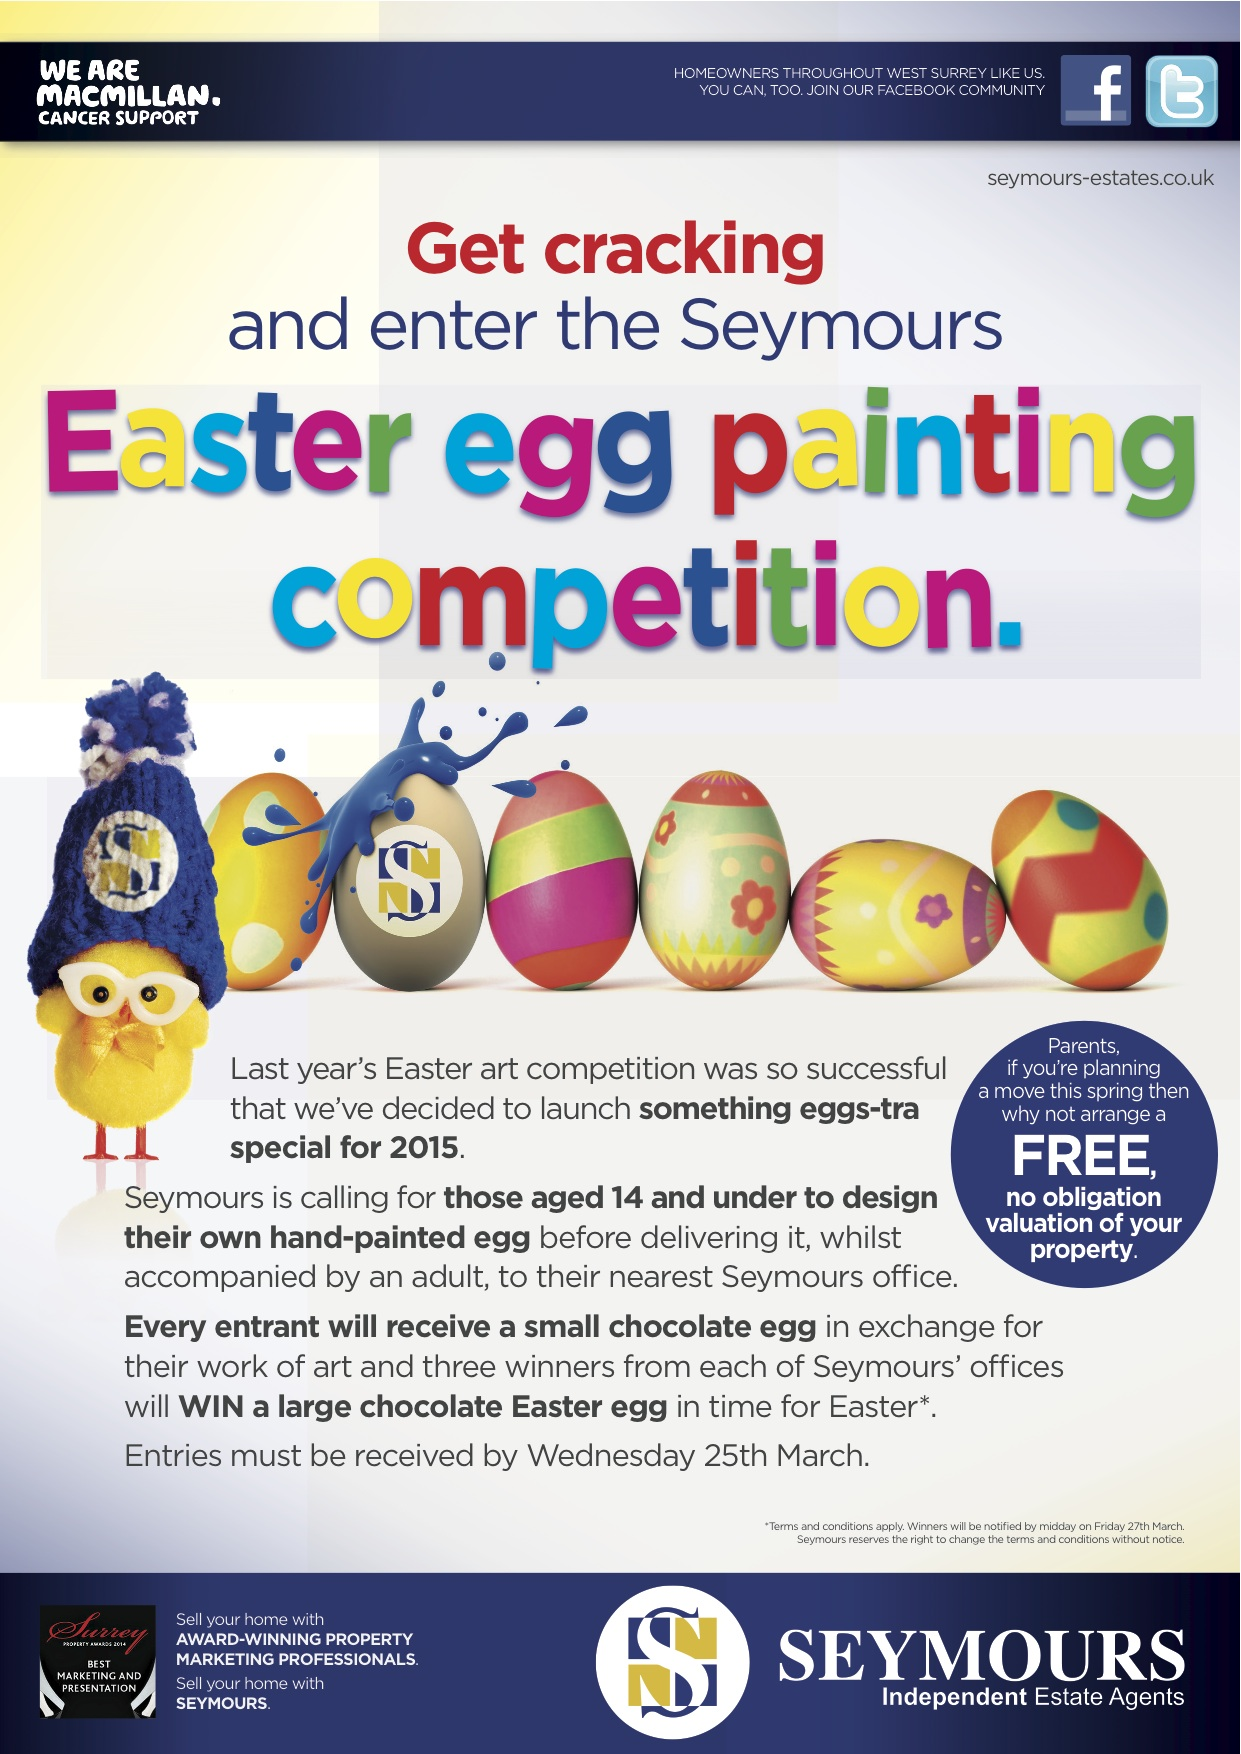 ENTER SEYMOURS' EASTER EGG PAINTING COMPETITION